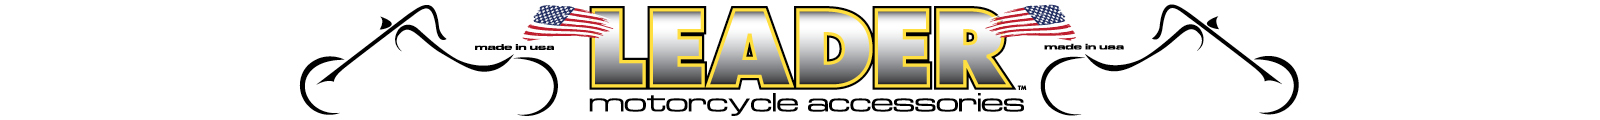 Leader Motorcycle Accessories